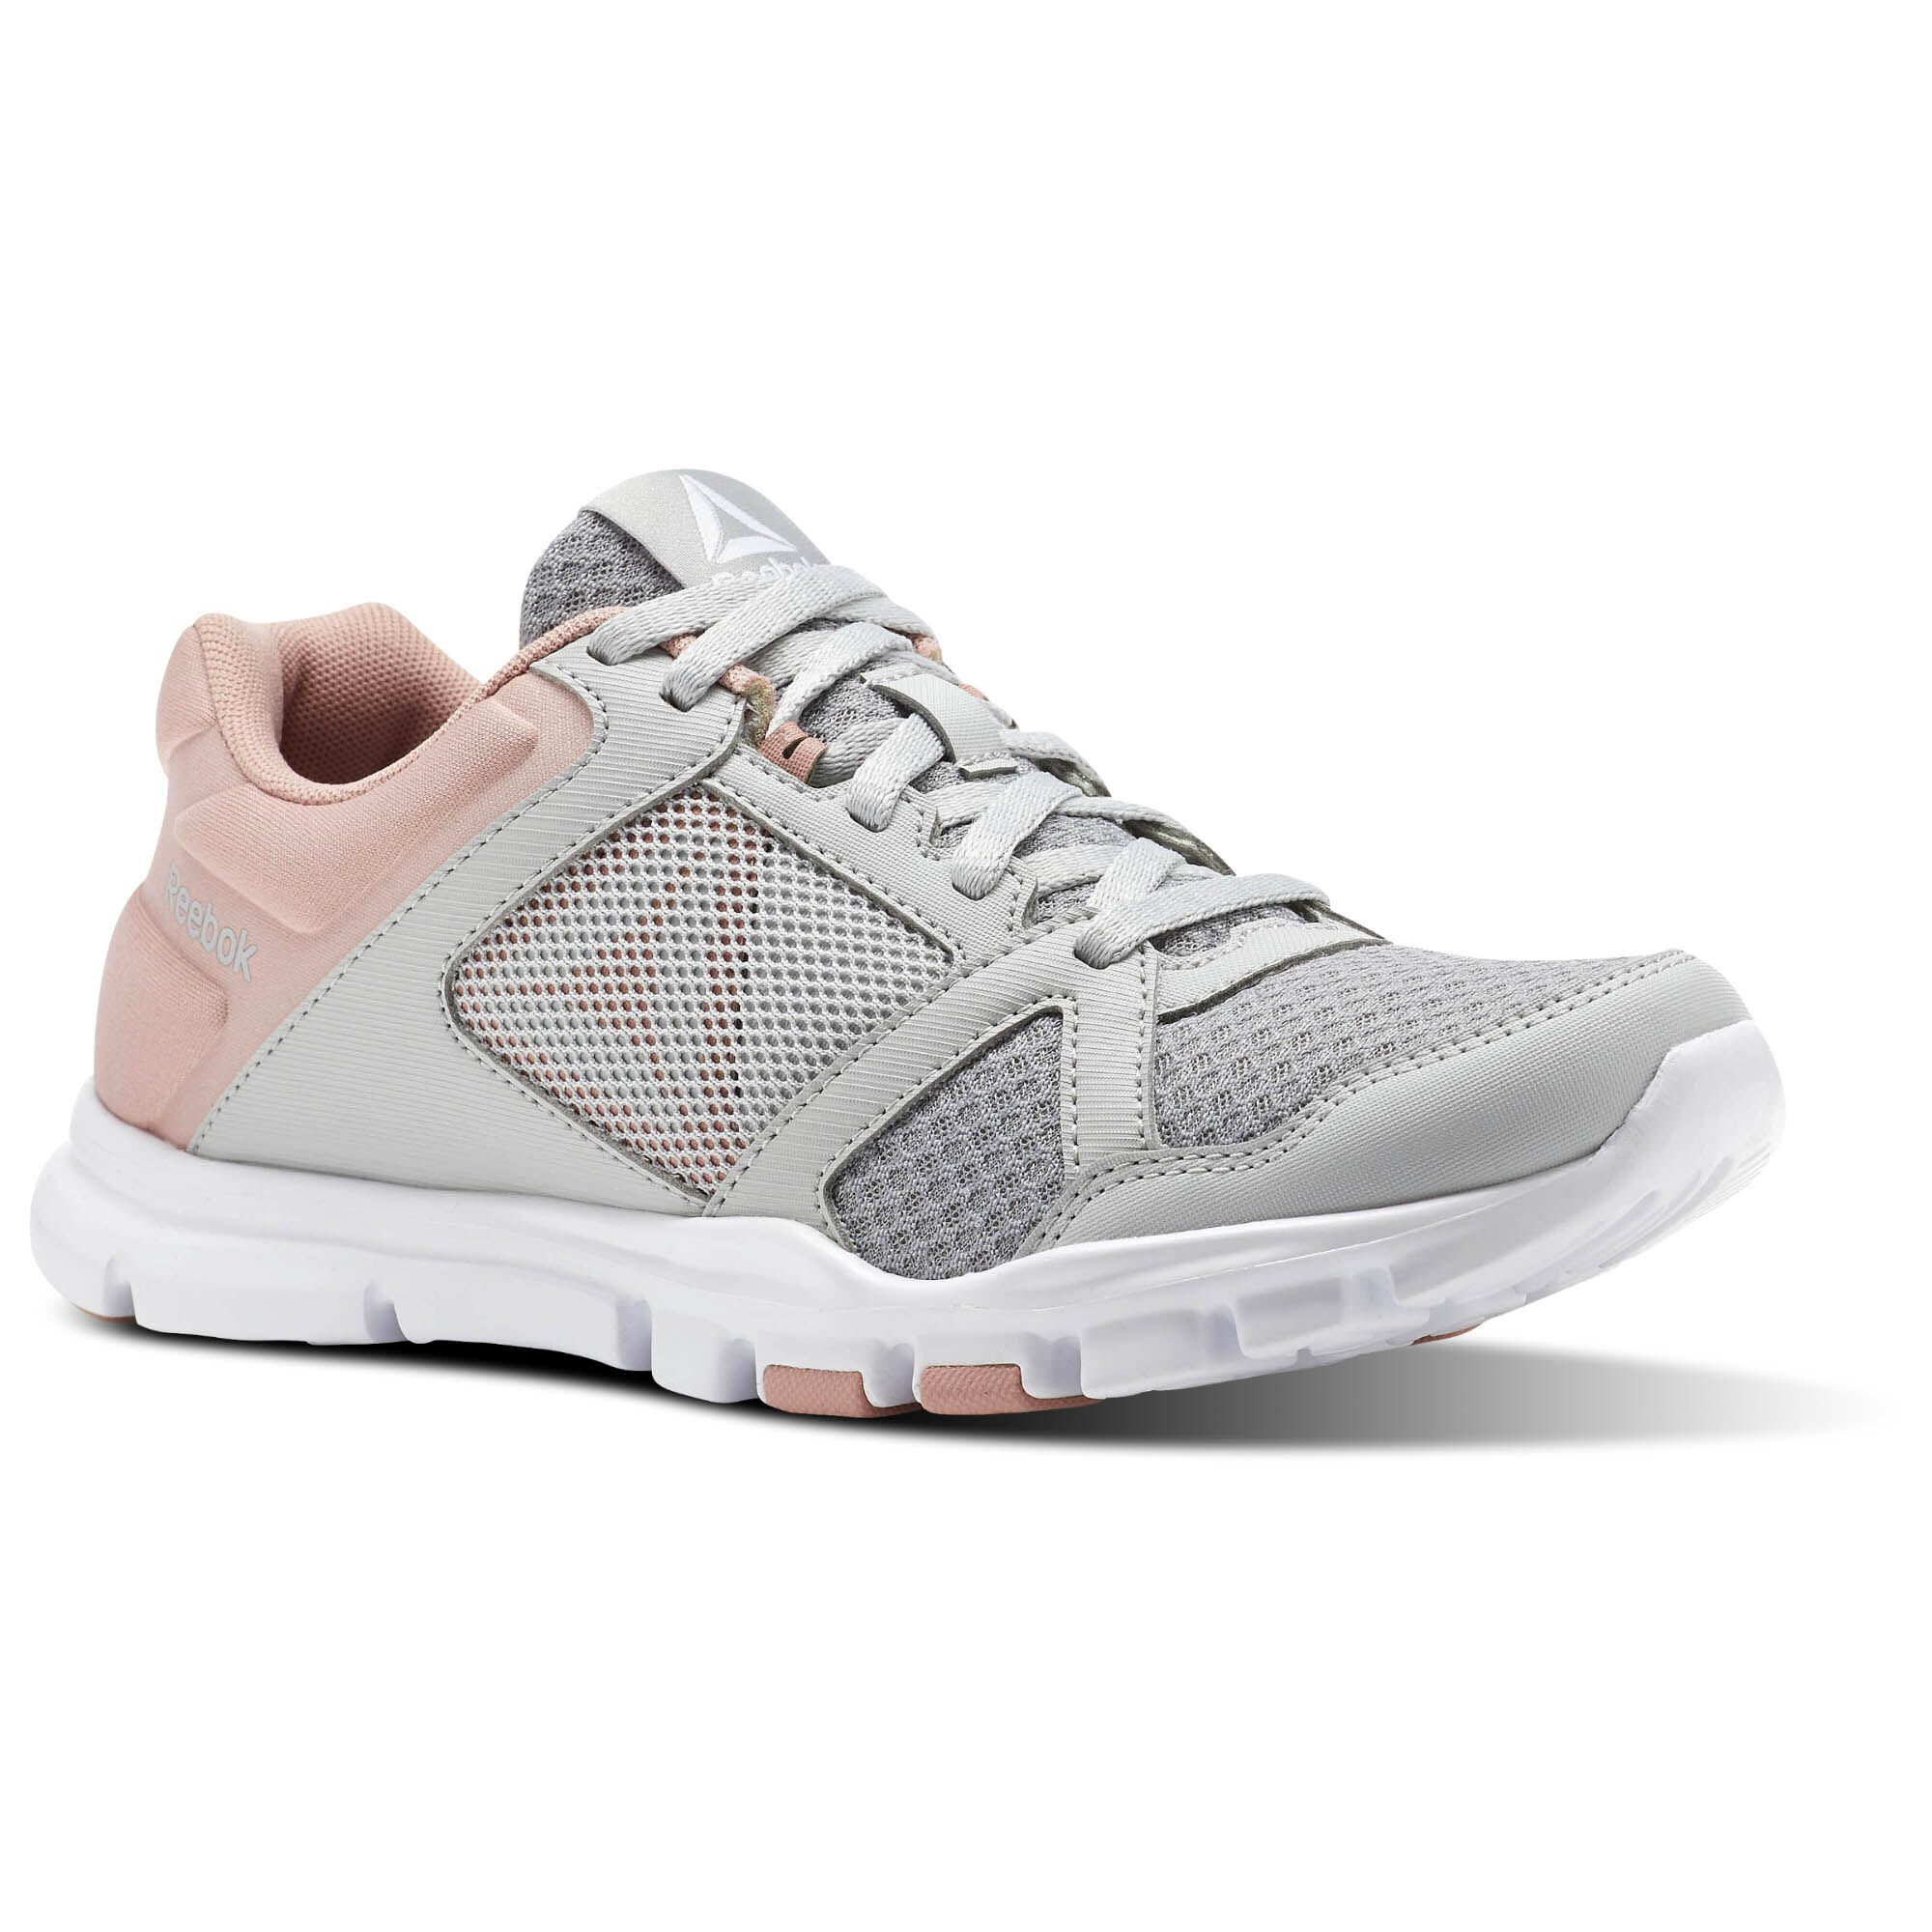 Schuhe Reebok - Yourflex Trainette 10 Mt CN5653 Rugged Rose/Tin Grey/Wht 2kVHOBJte3